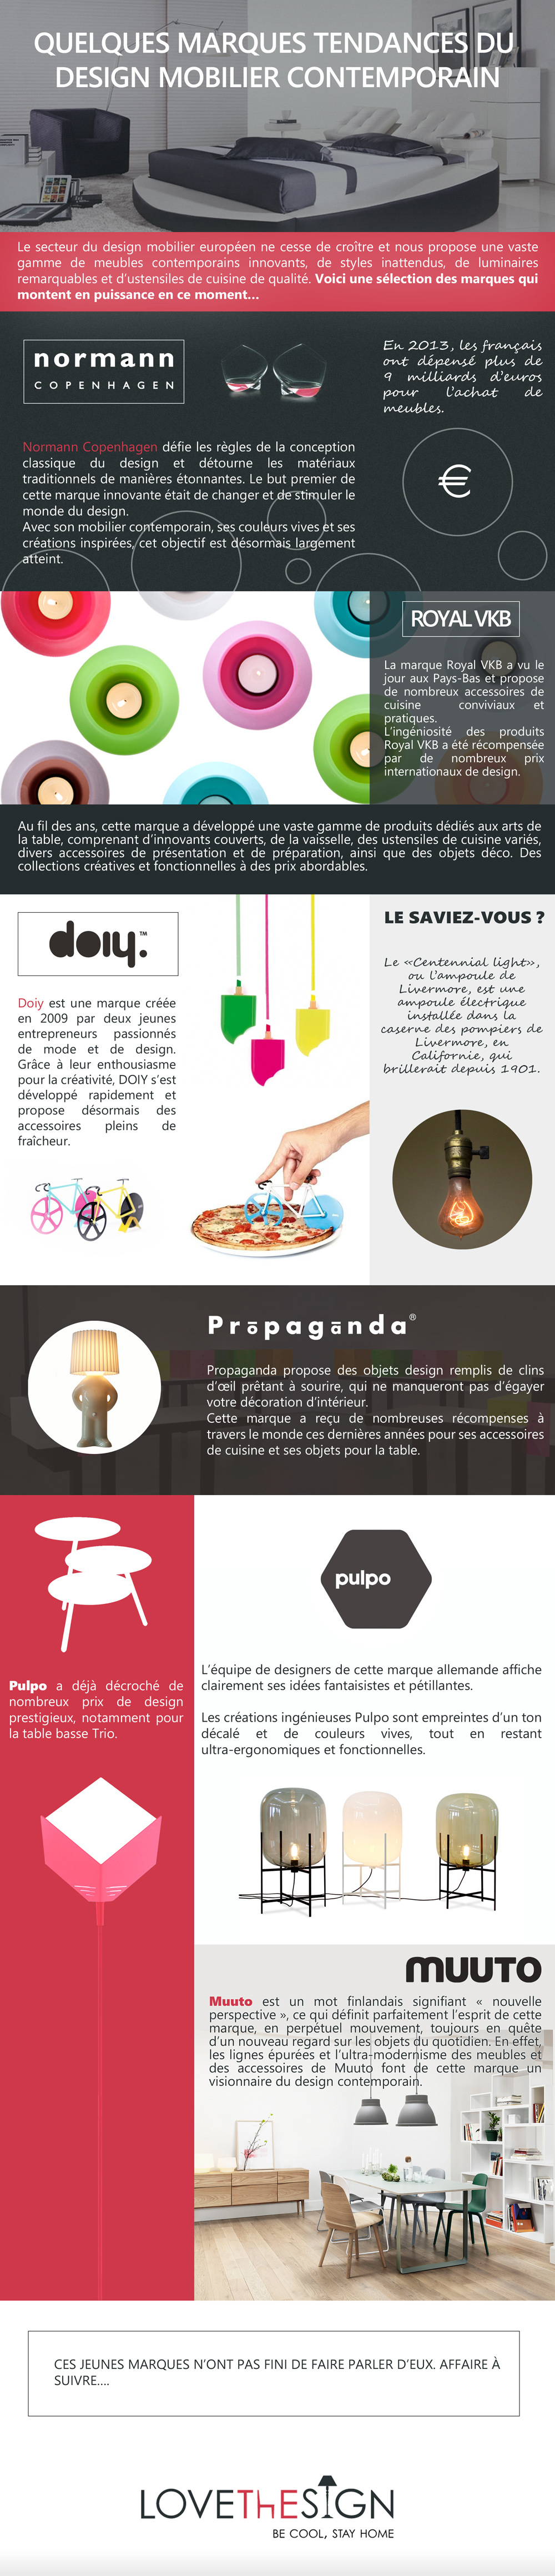 Infographic in French for Love the Sign, Different trends in contemporary furniture, for sharing on social media